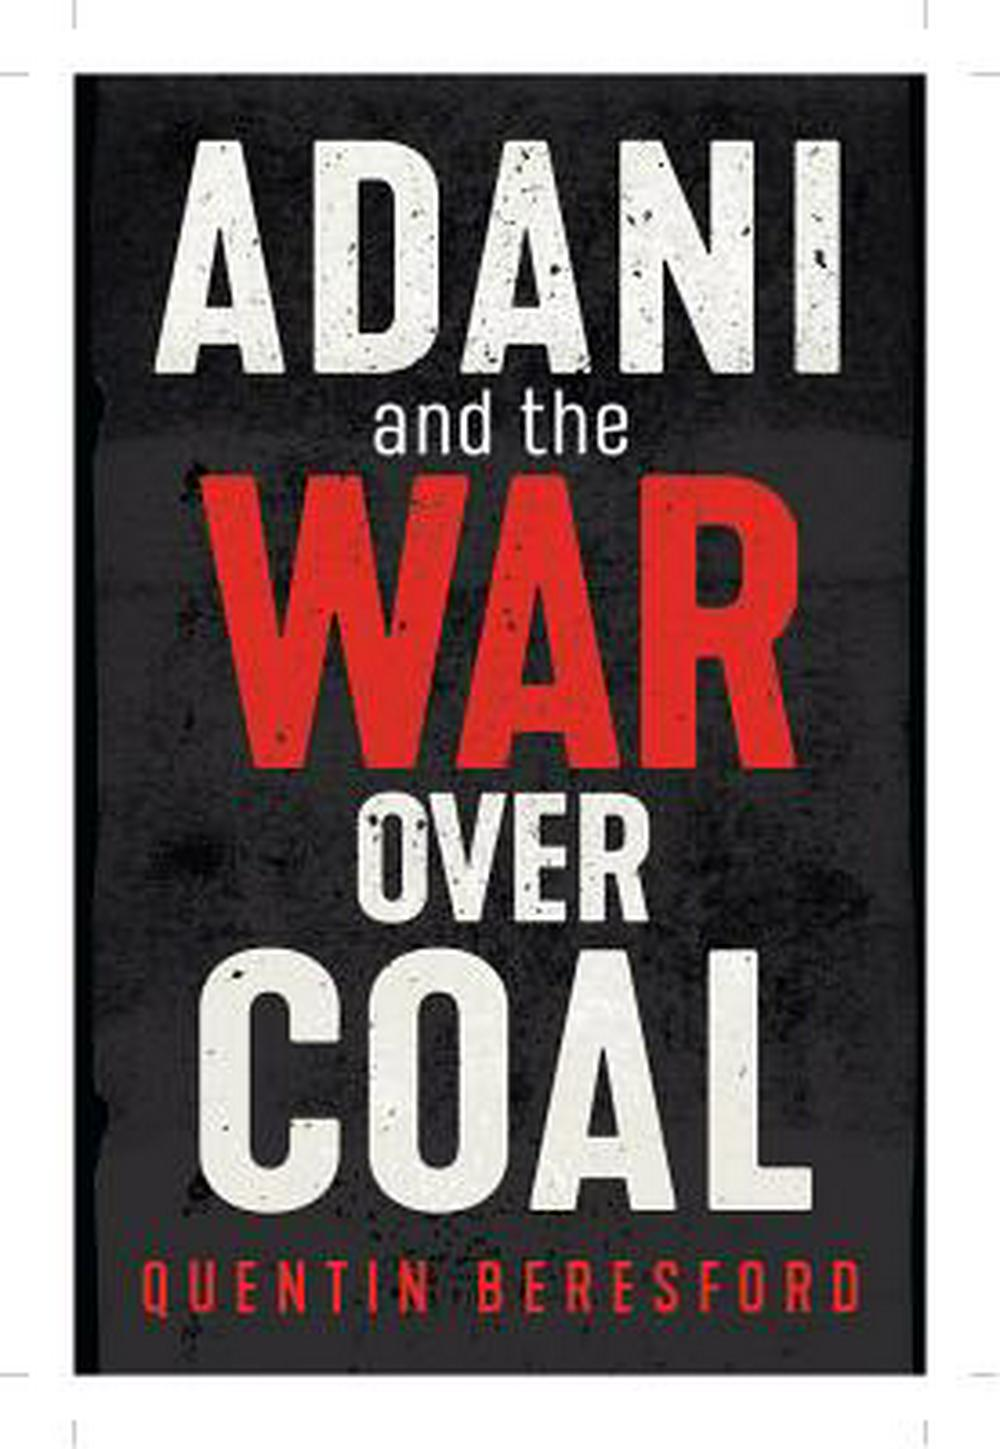 Adani and the Coal Wars